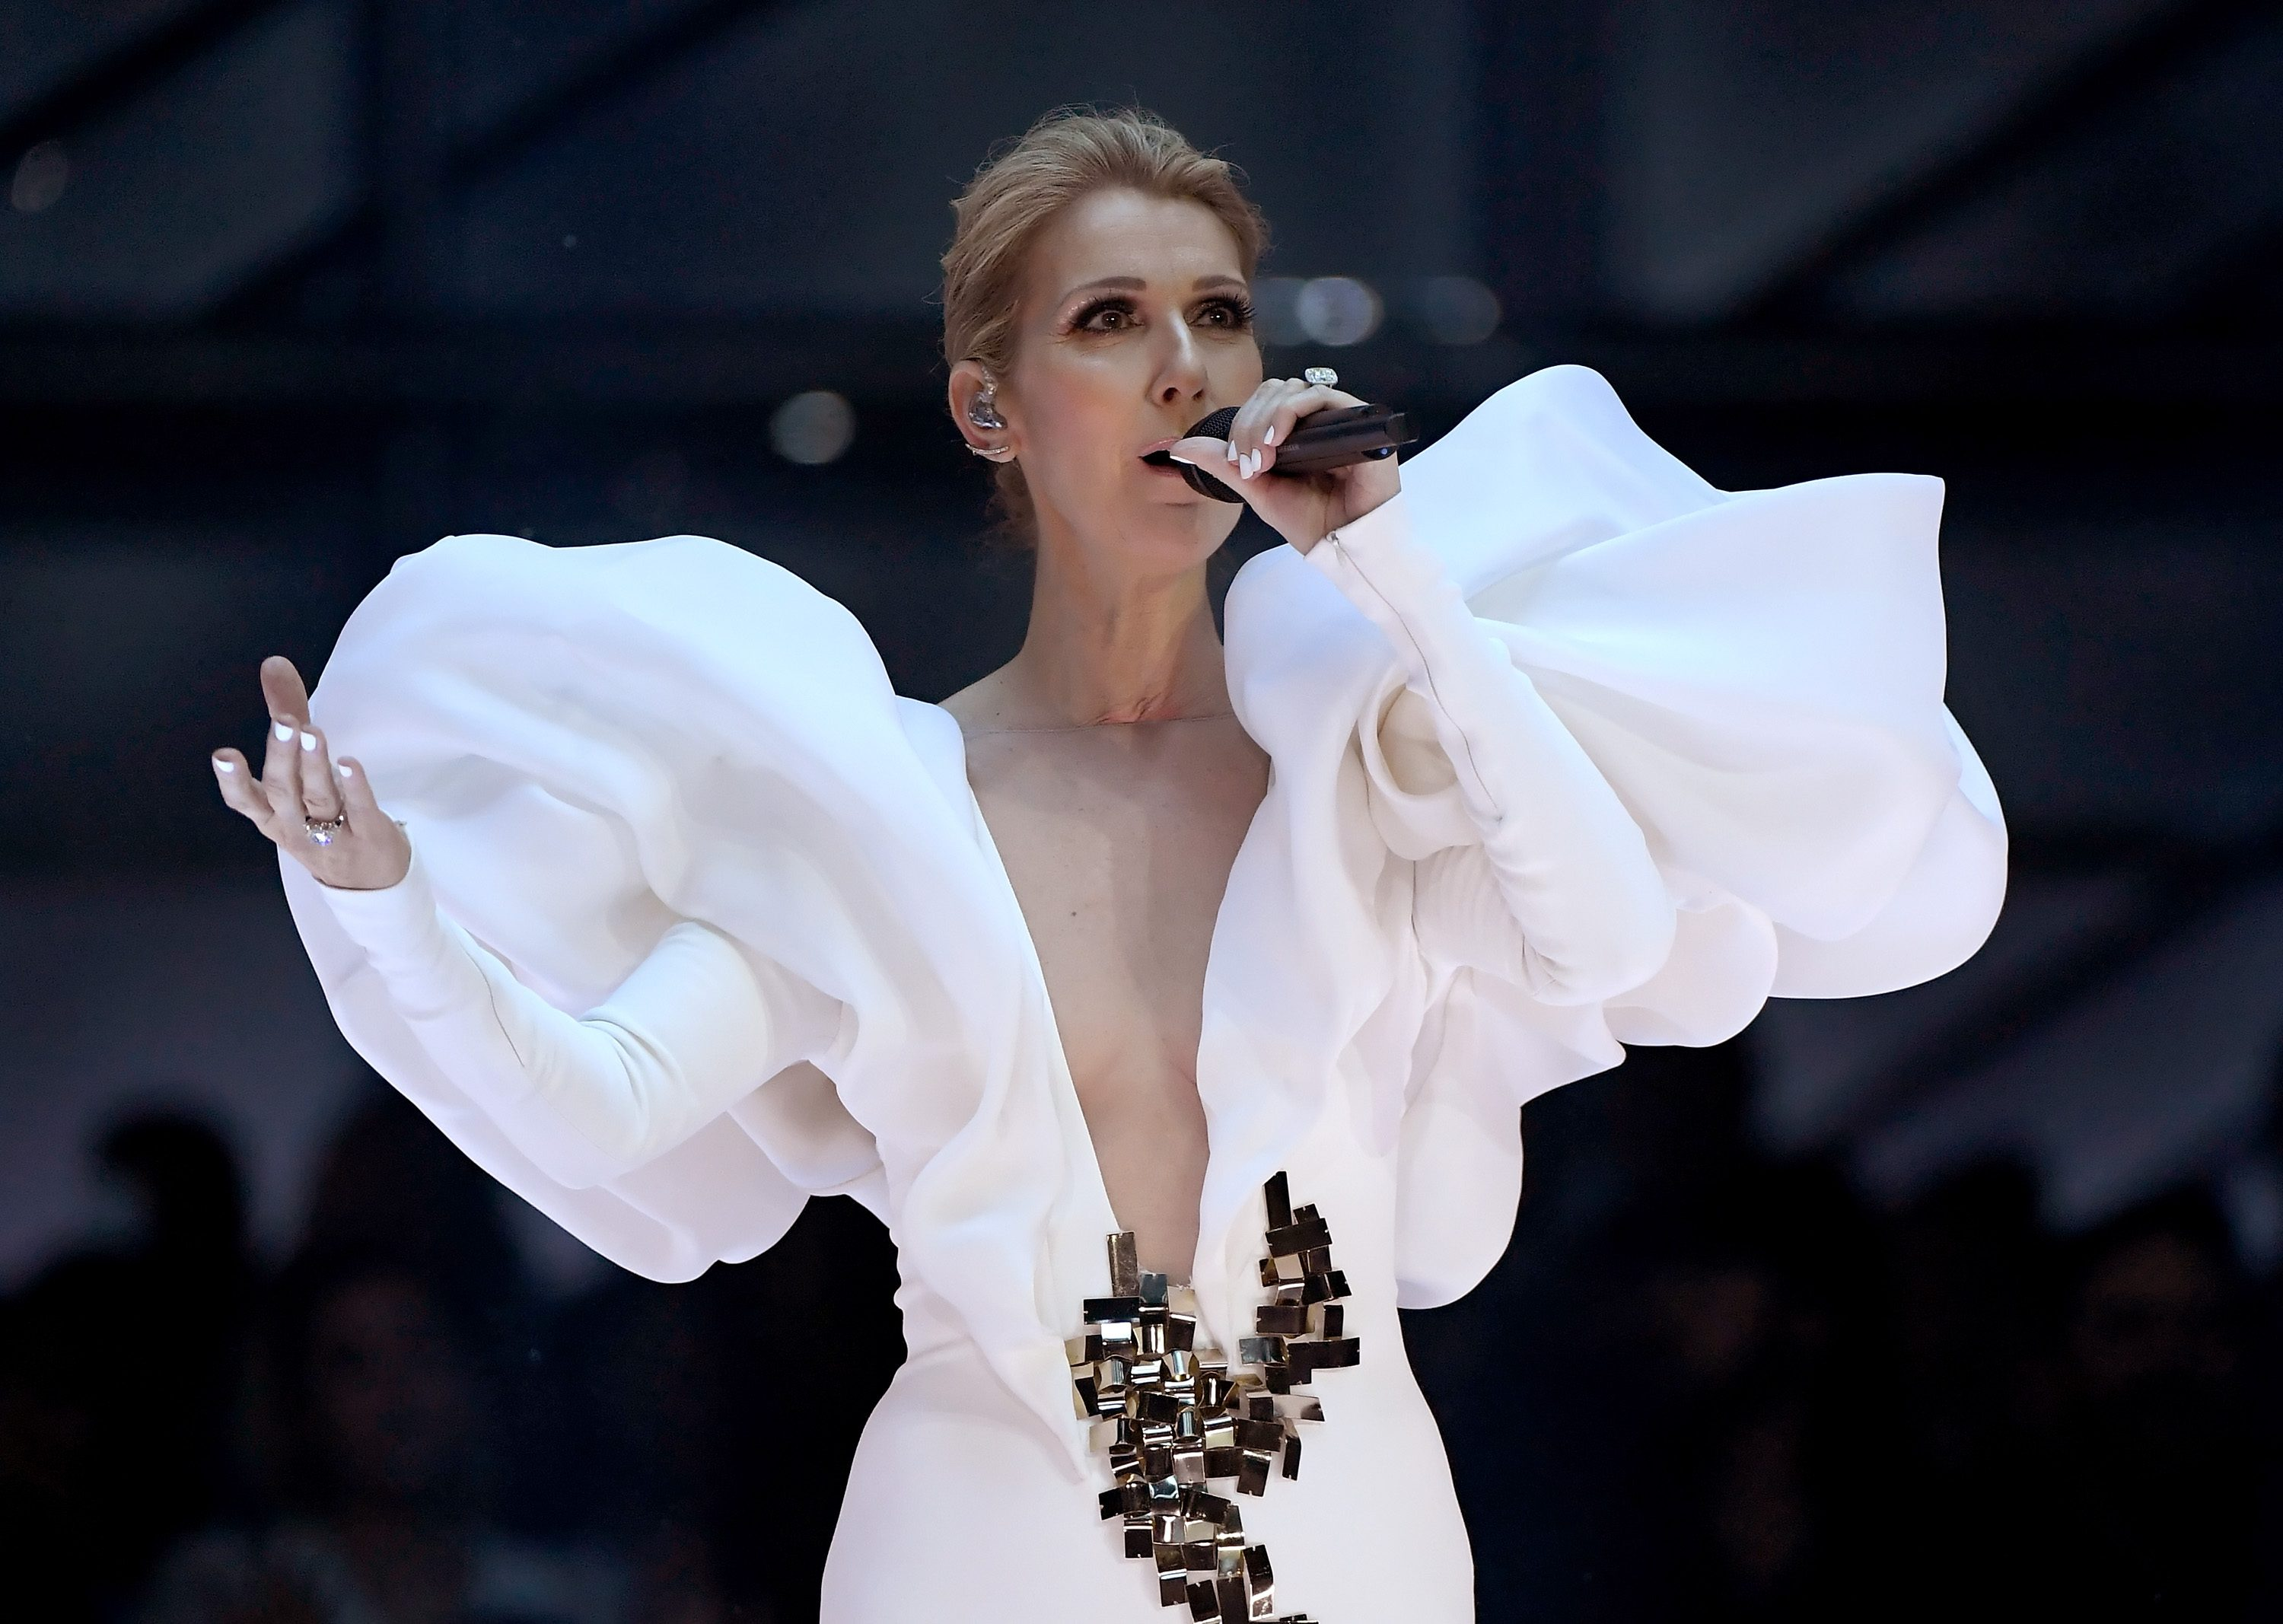 best service 9def3 4adcc Celine Dion, abito bianco per cantare My Heart Will Go On ai ...